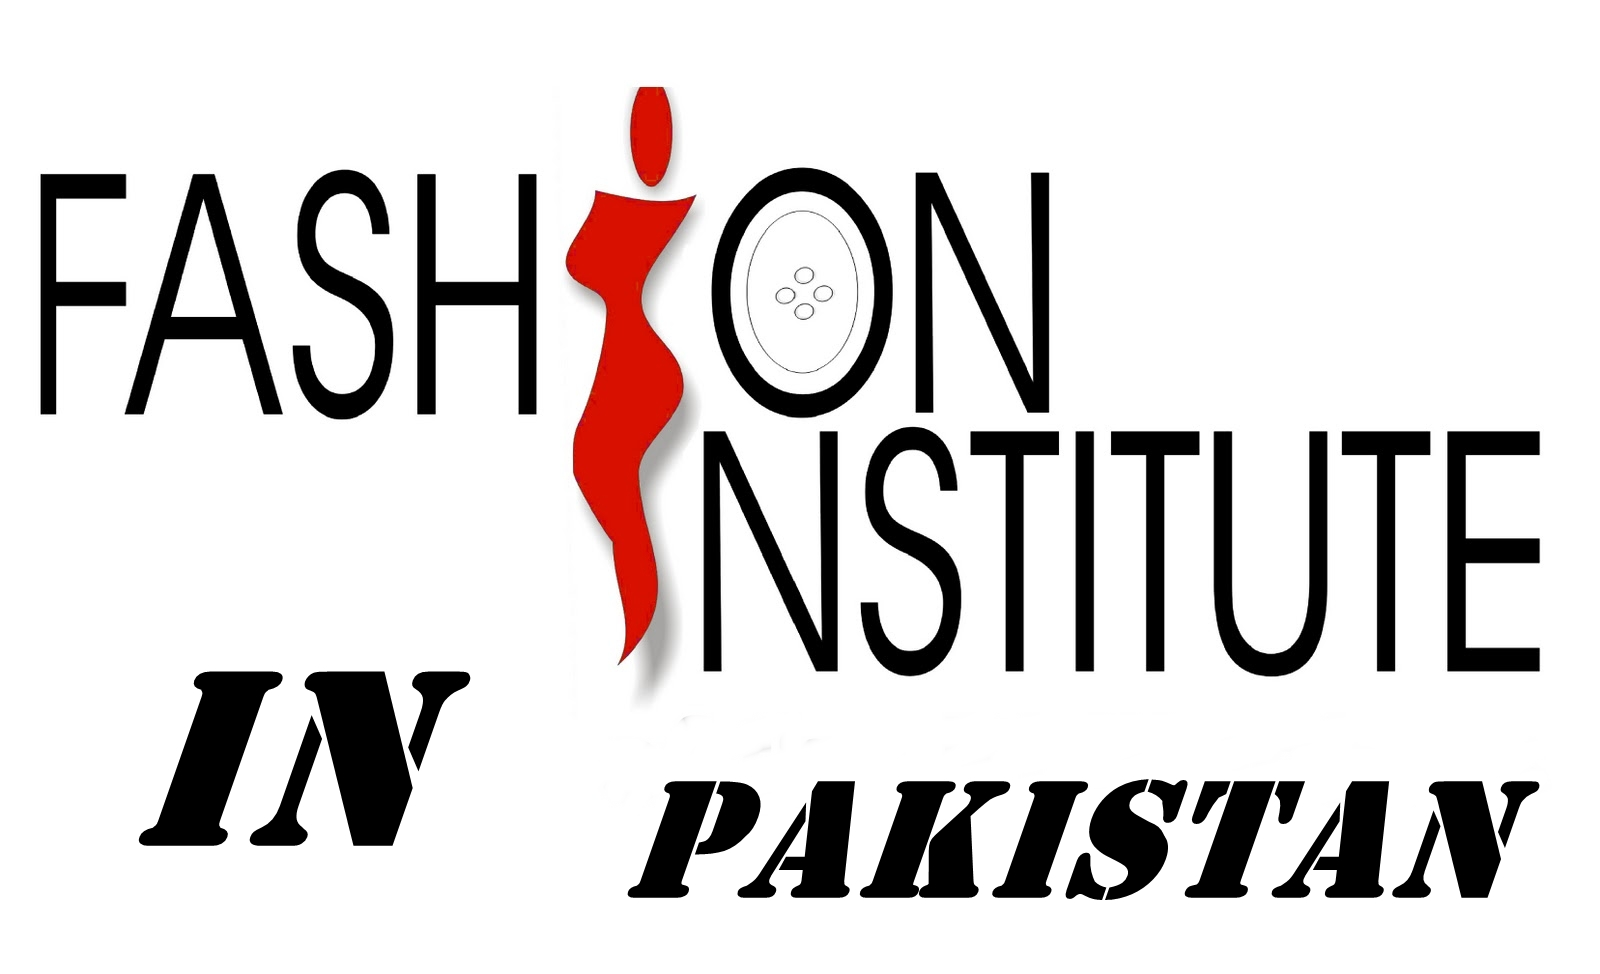 Best Fashion Designing School Institutes In Pakistan Lahore Karachi Islamabad Rawalpindi Faisalabad Multan Peshawar Quetta